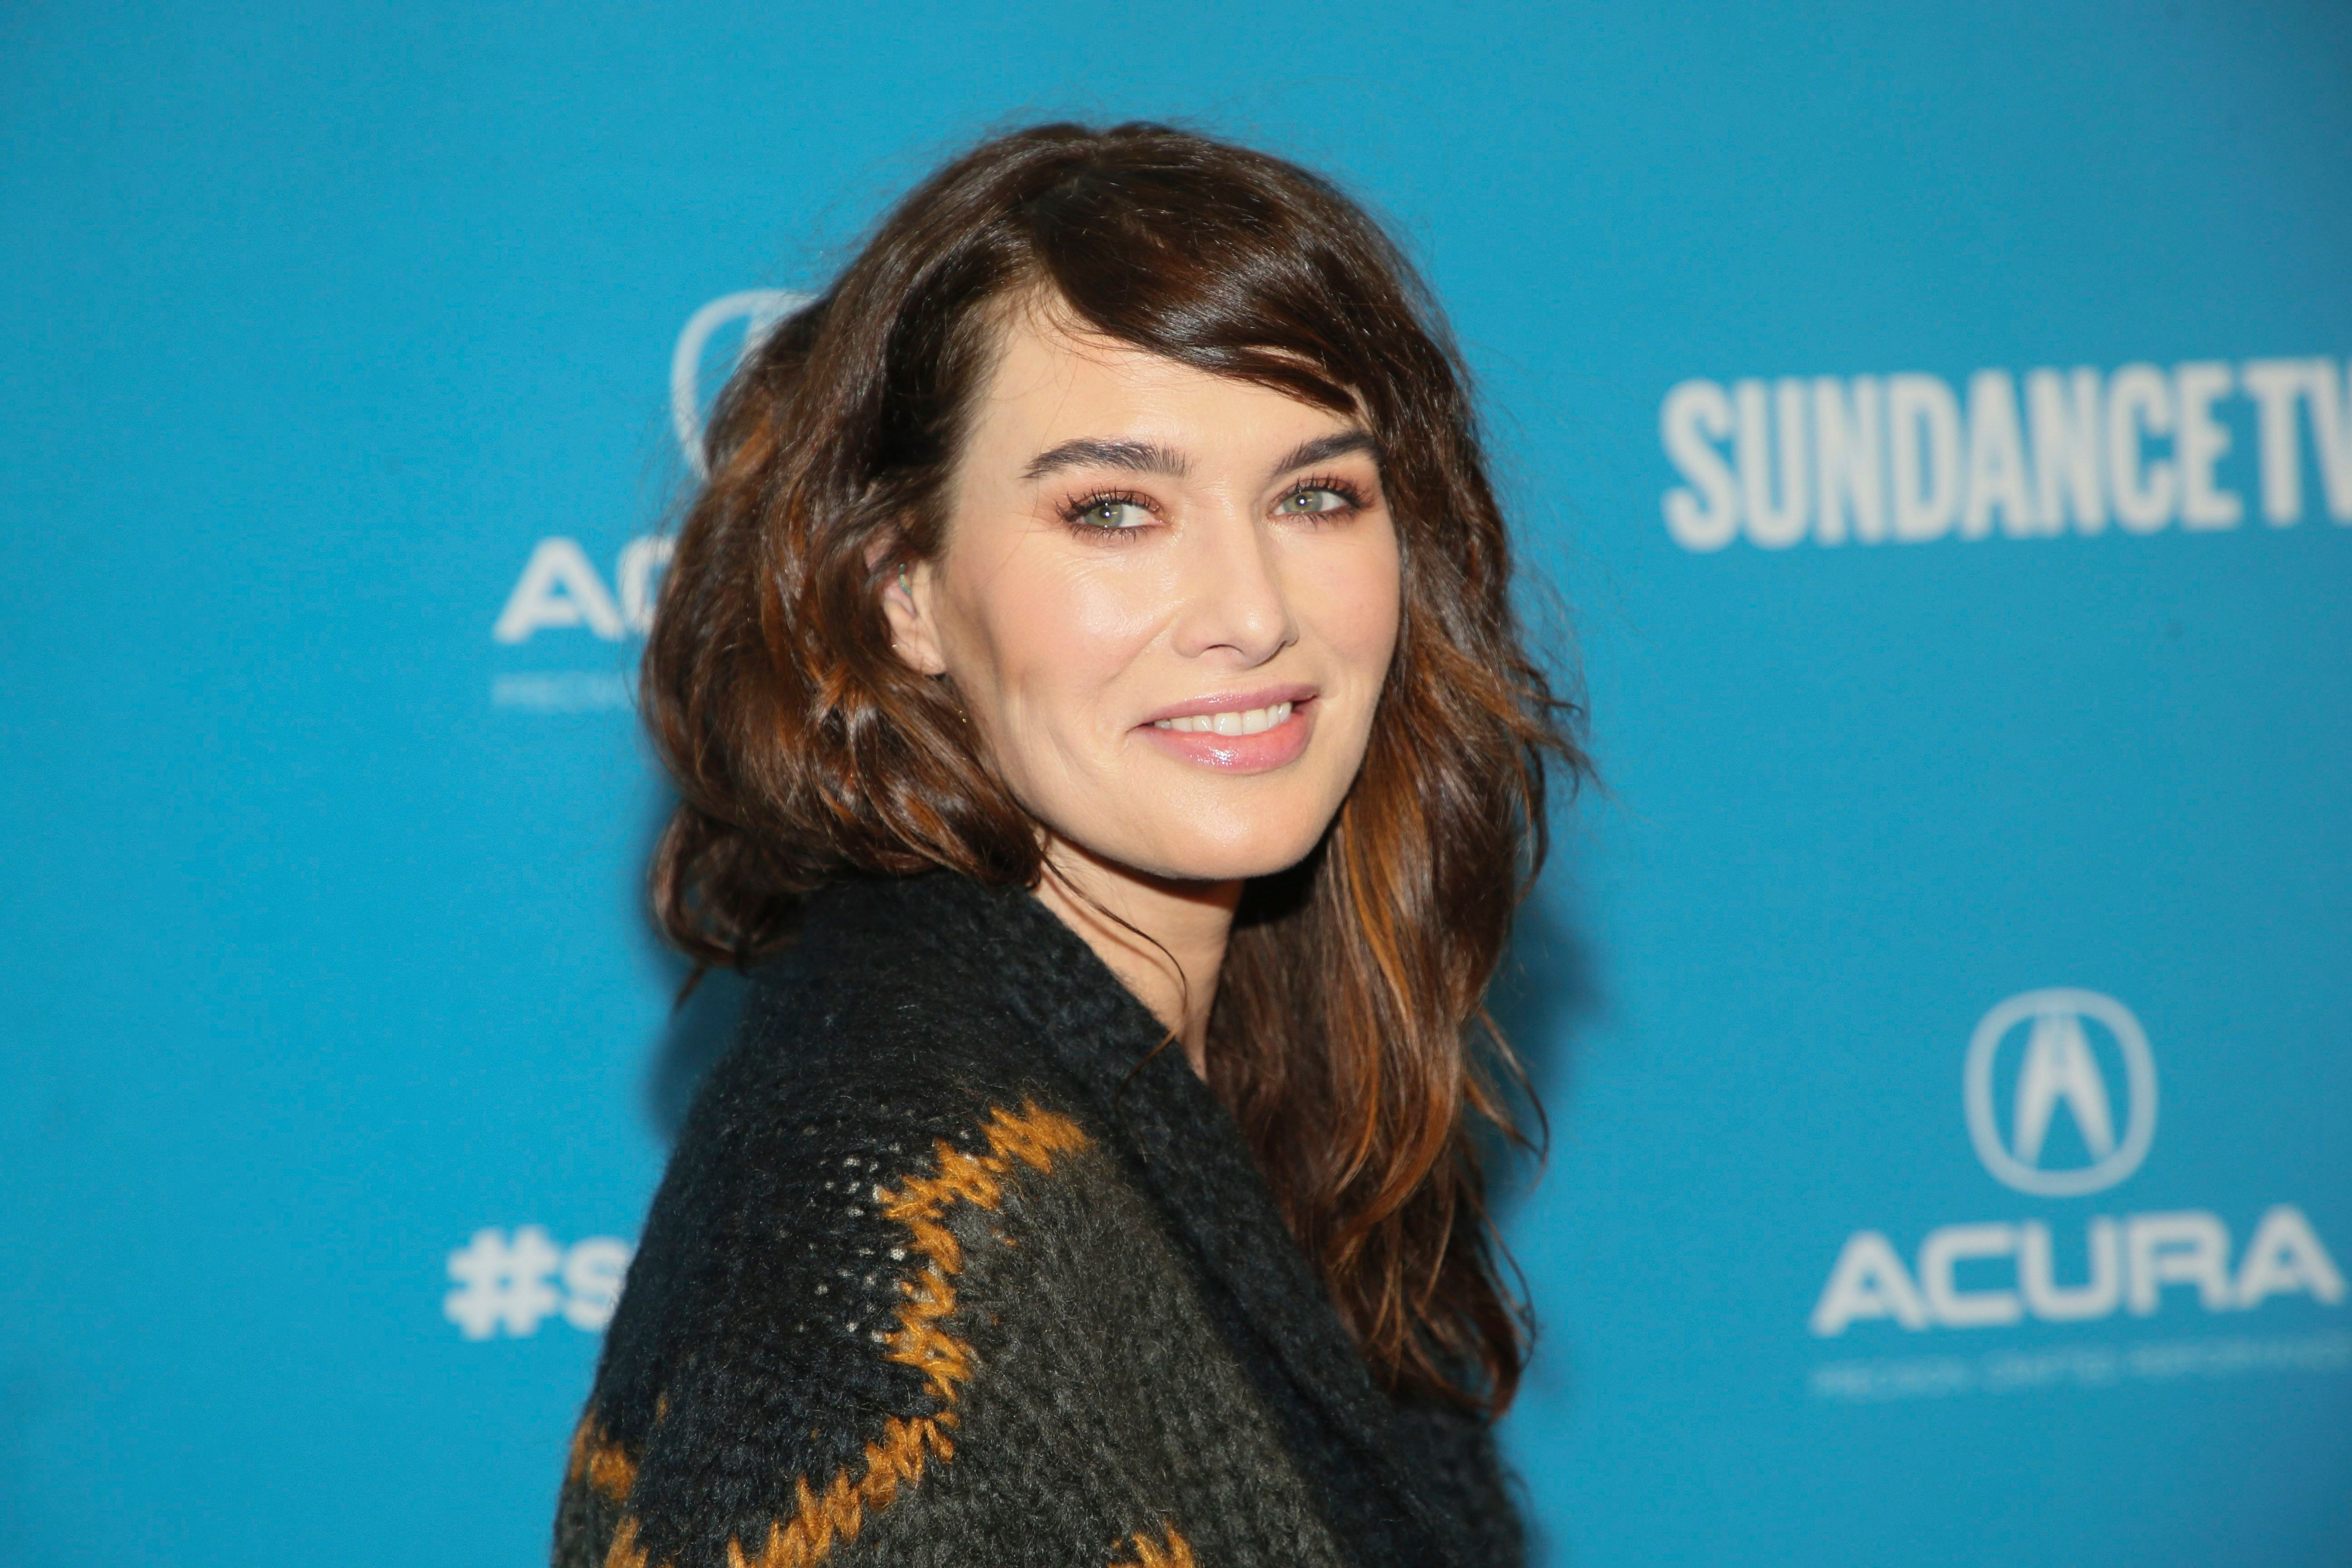 TheFappening Lena Headey nudes (17 foto and video), Ass, Fappening, Boobs, panties 2015